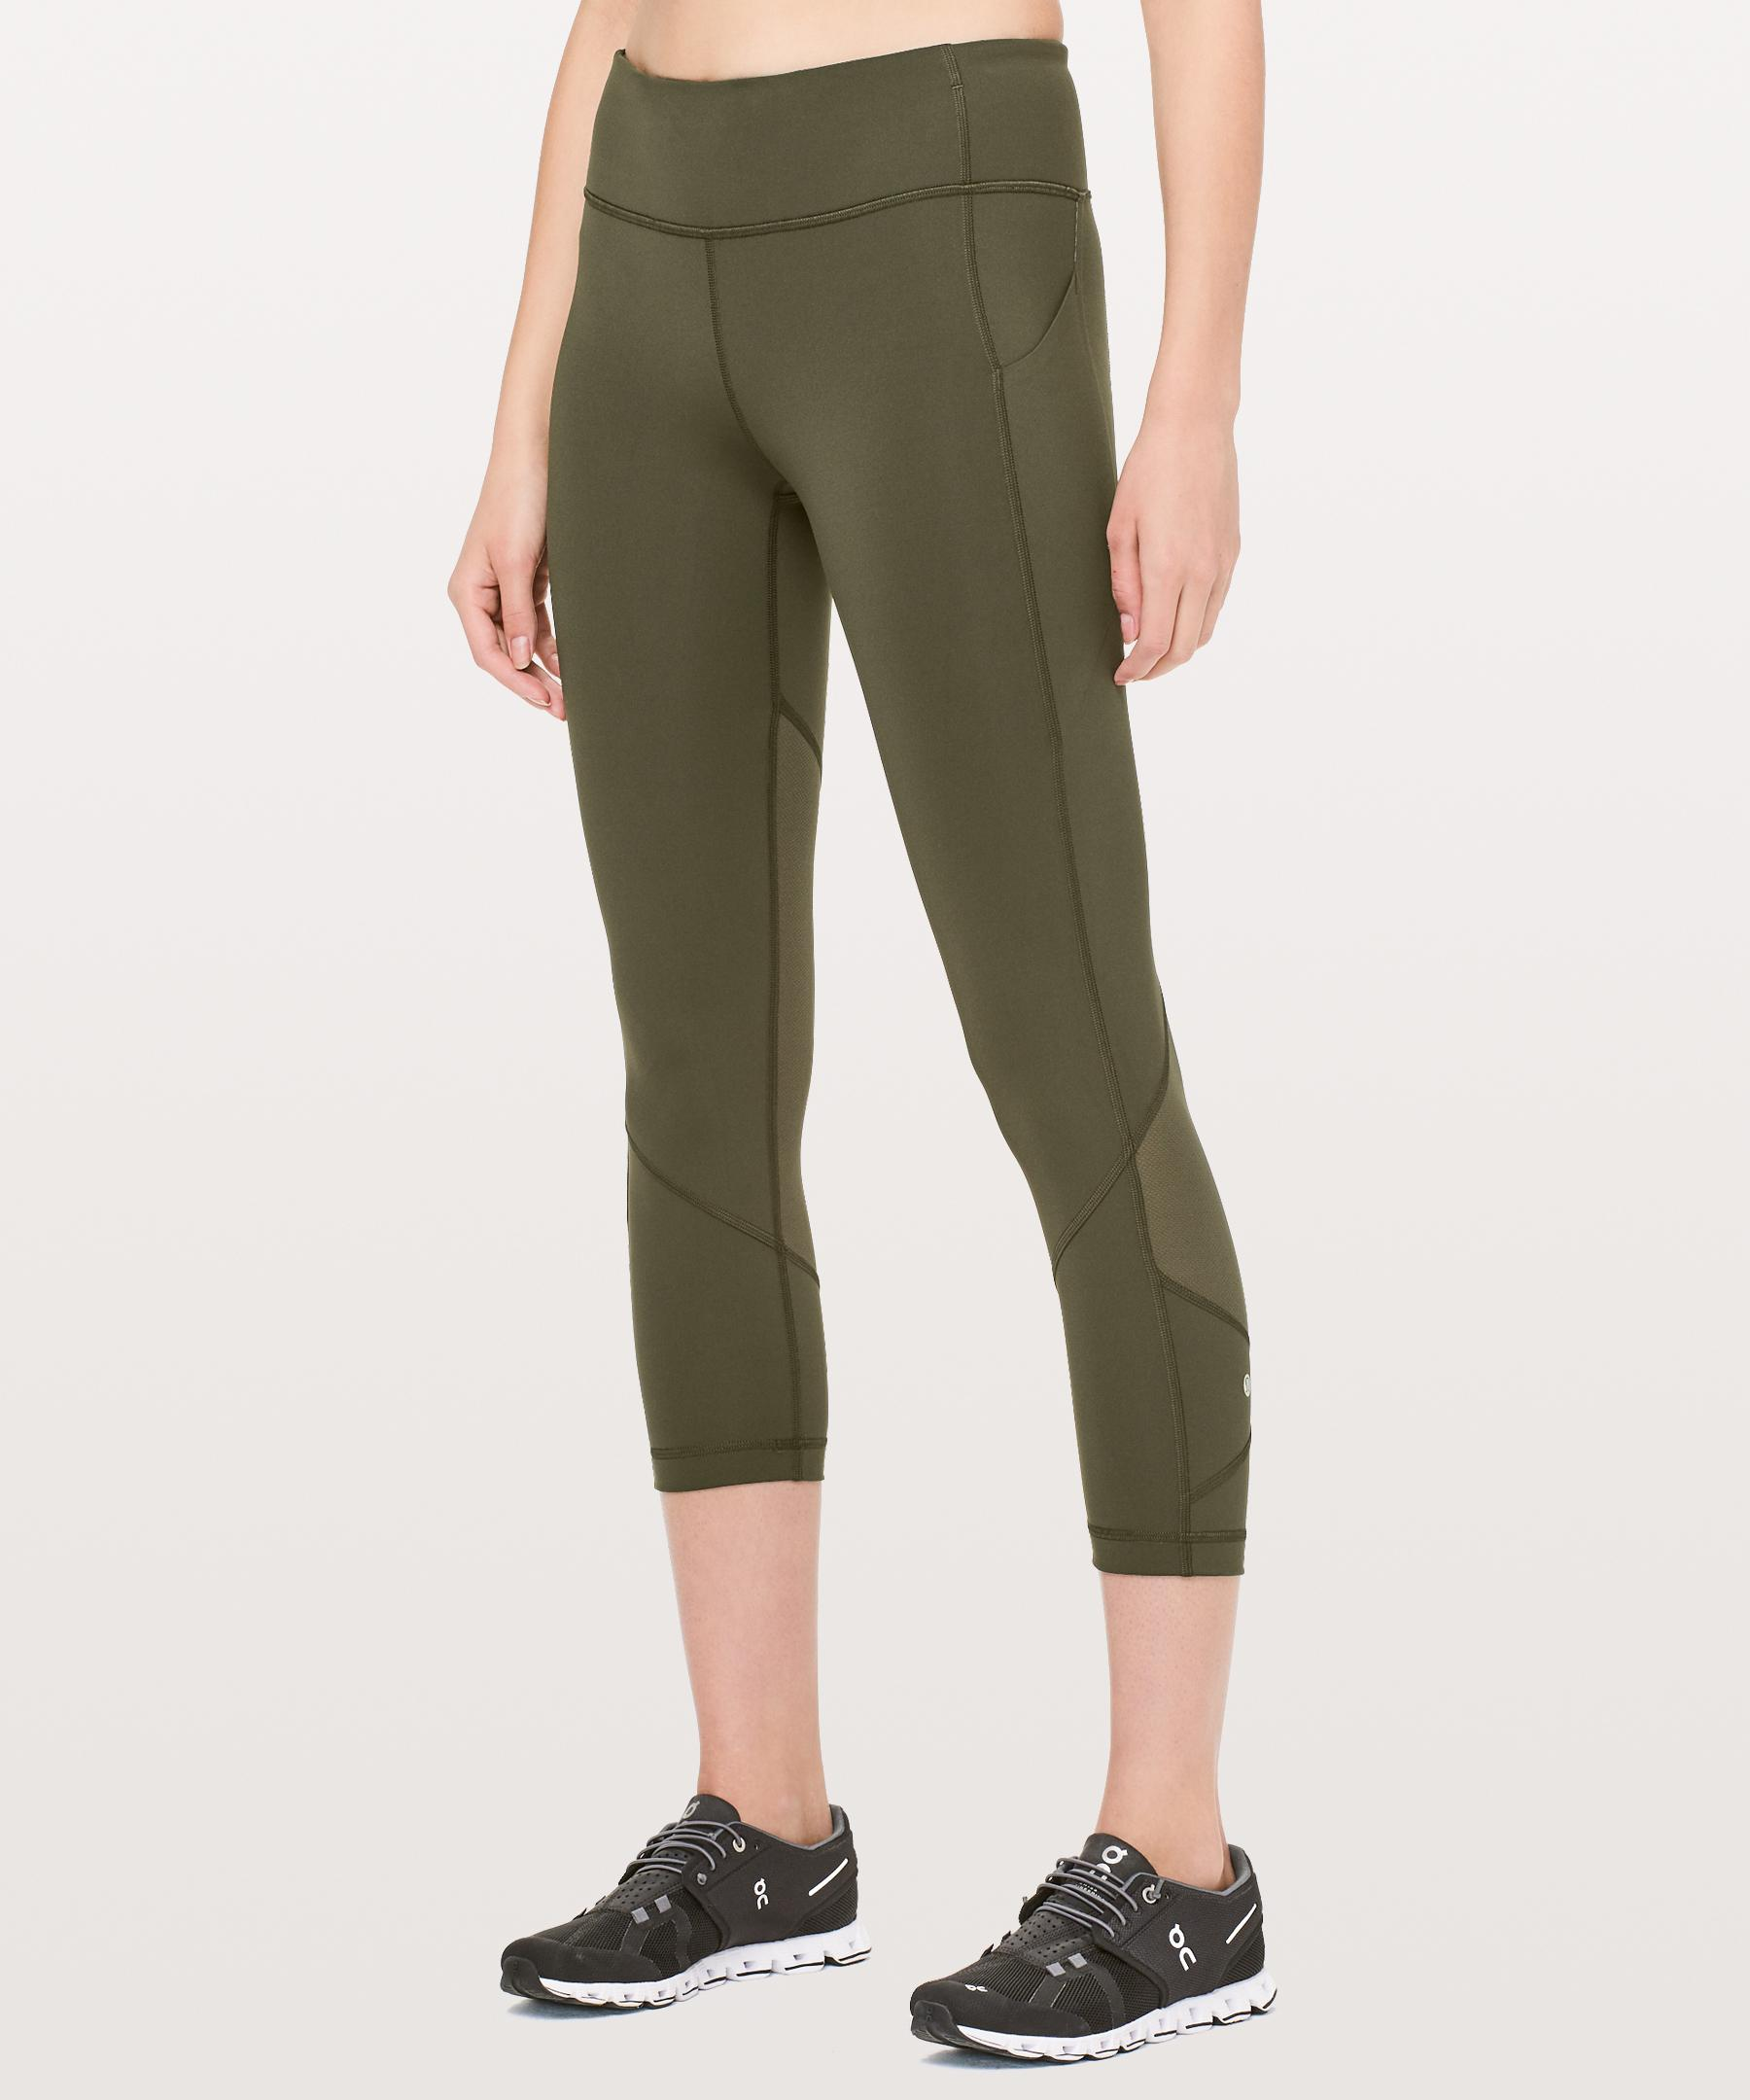 ca927b190 lululemon athletica Pace Rival Crop in Green - Lyst